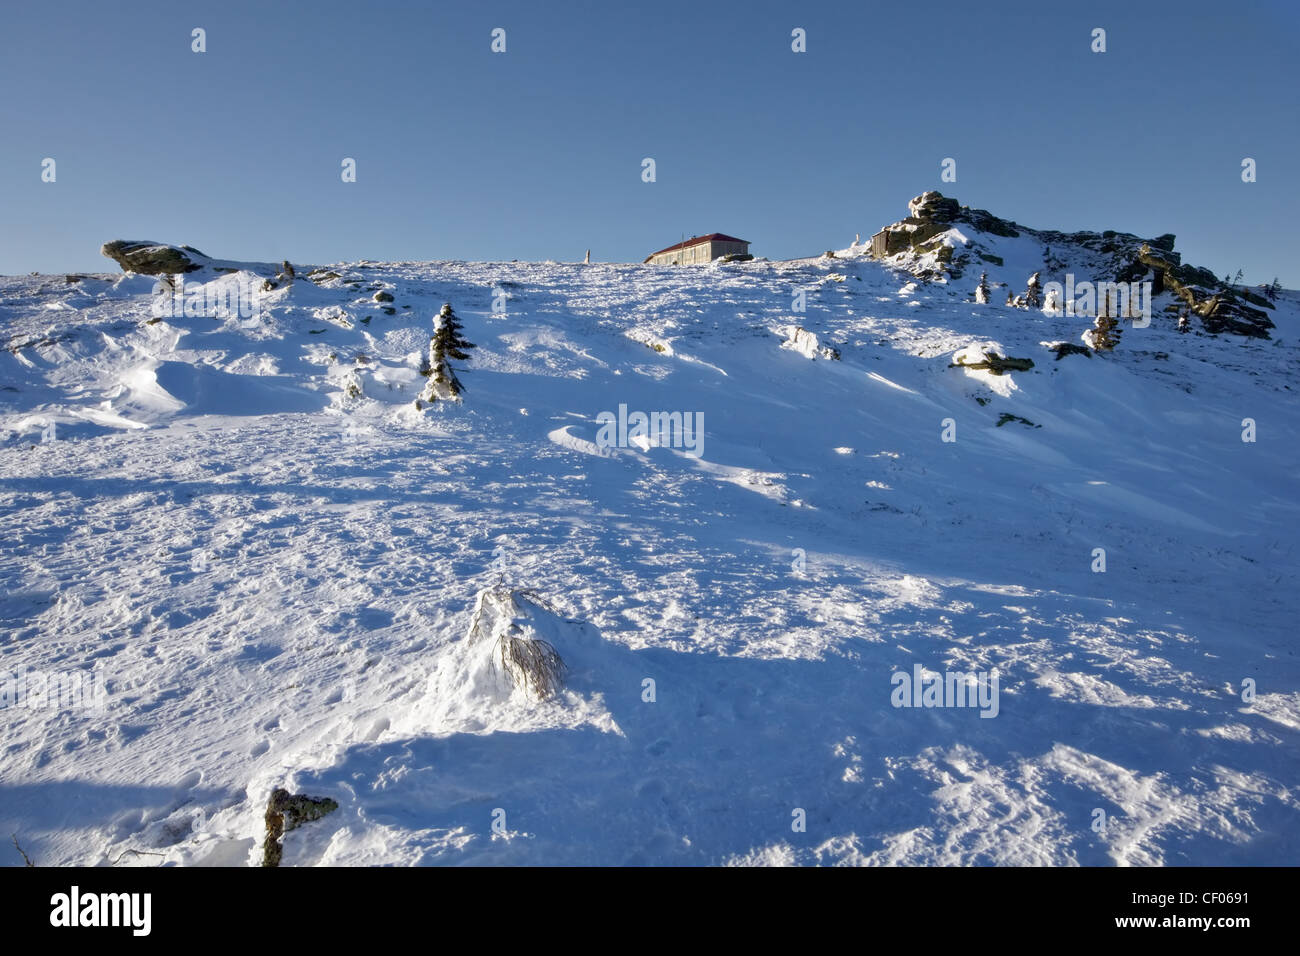 Winter hut at the top of mountain. Ural mountains. National park Taganay. Taiga. Russia. - Stock Image